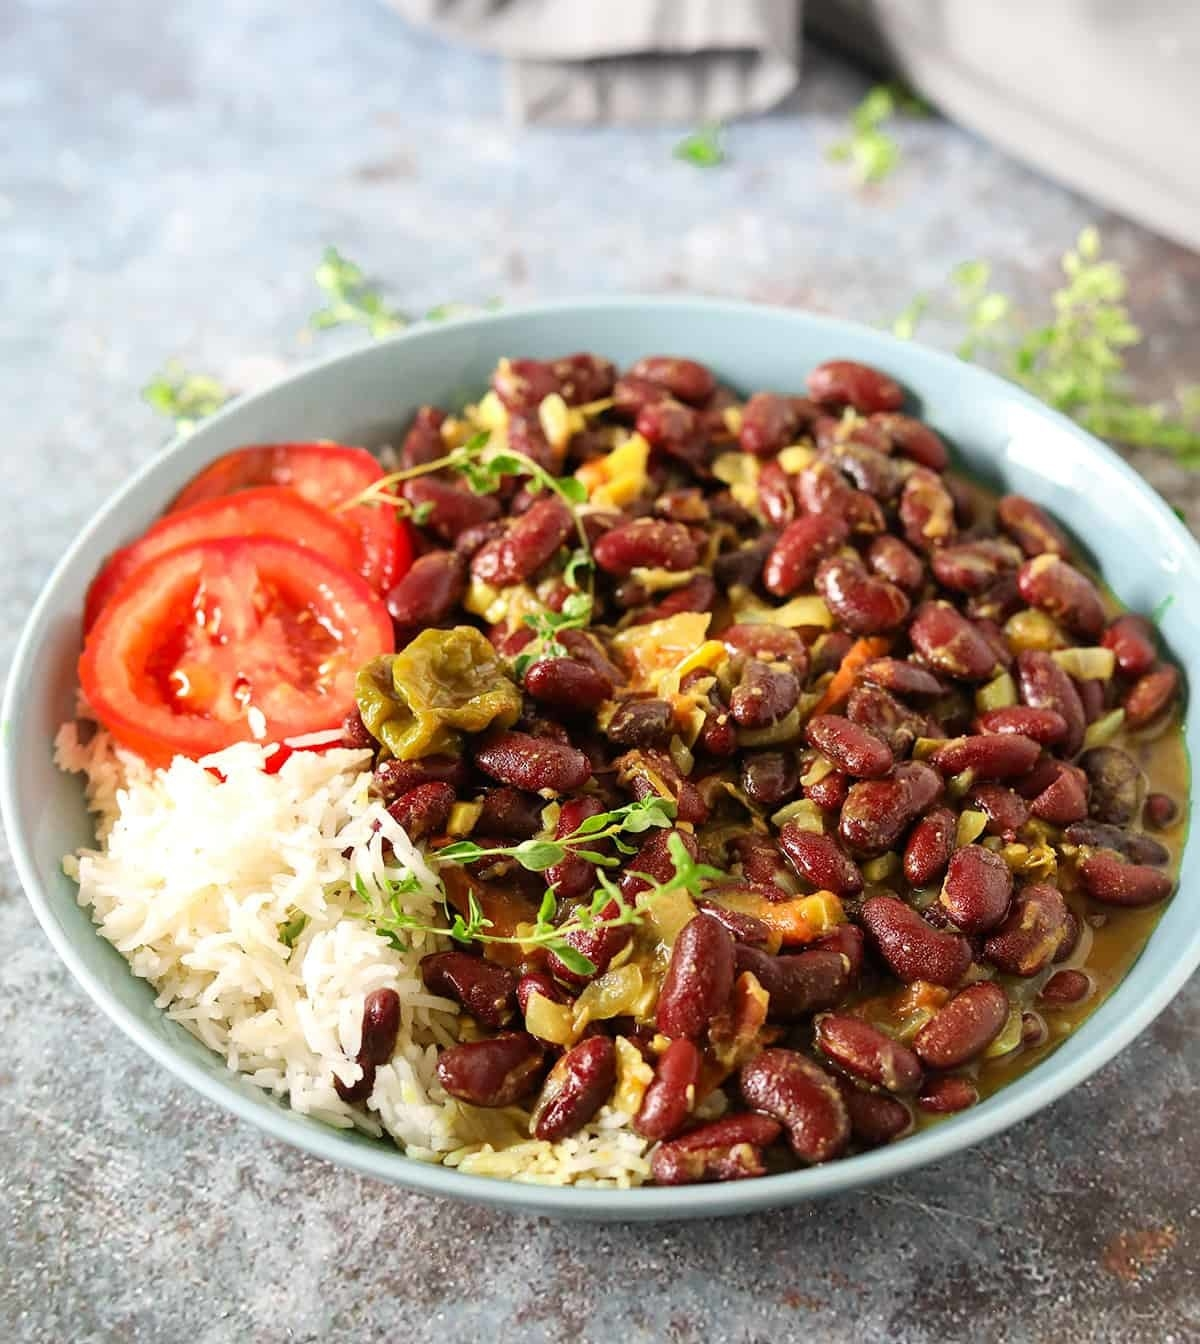 Large plate filled with kidney bean curry, white rice, and tomato slices.